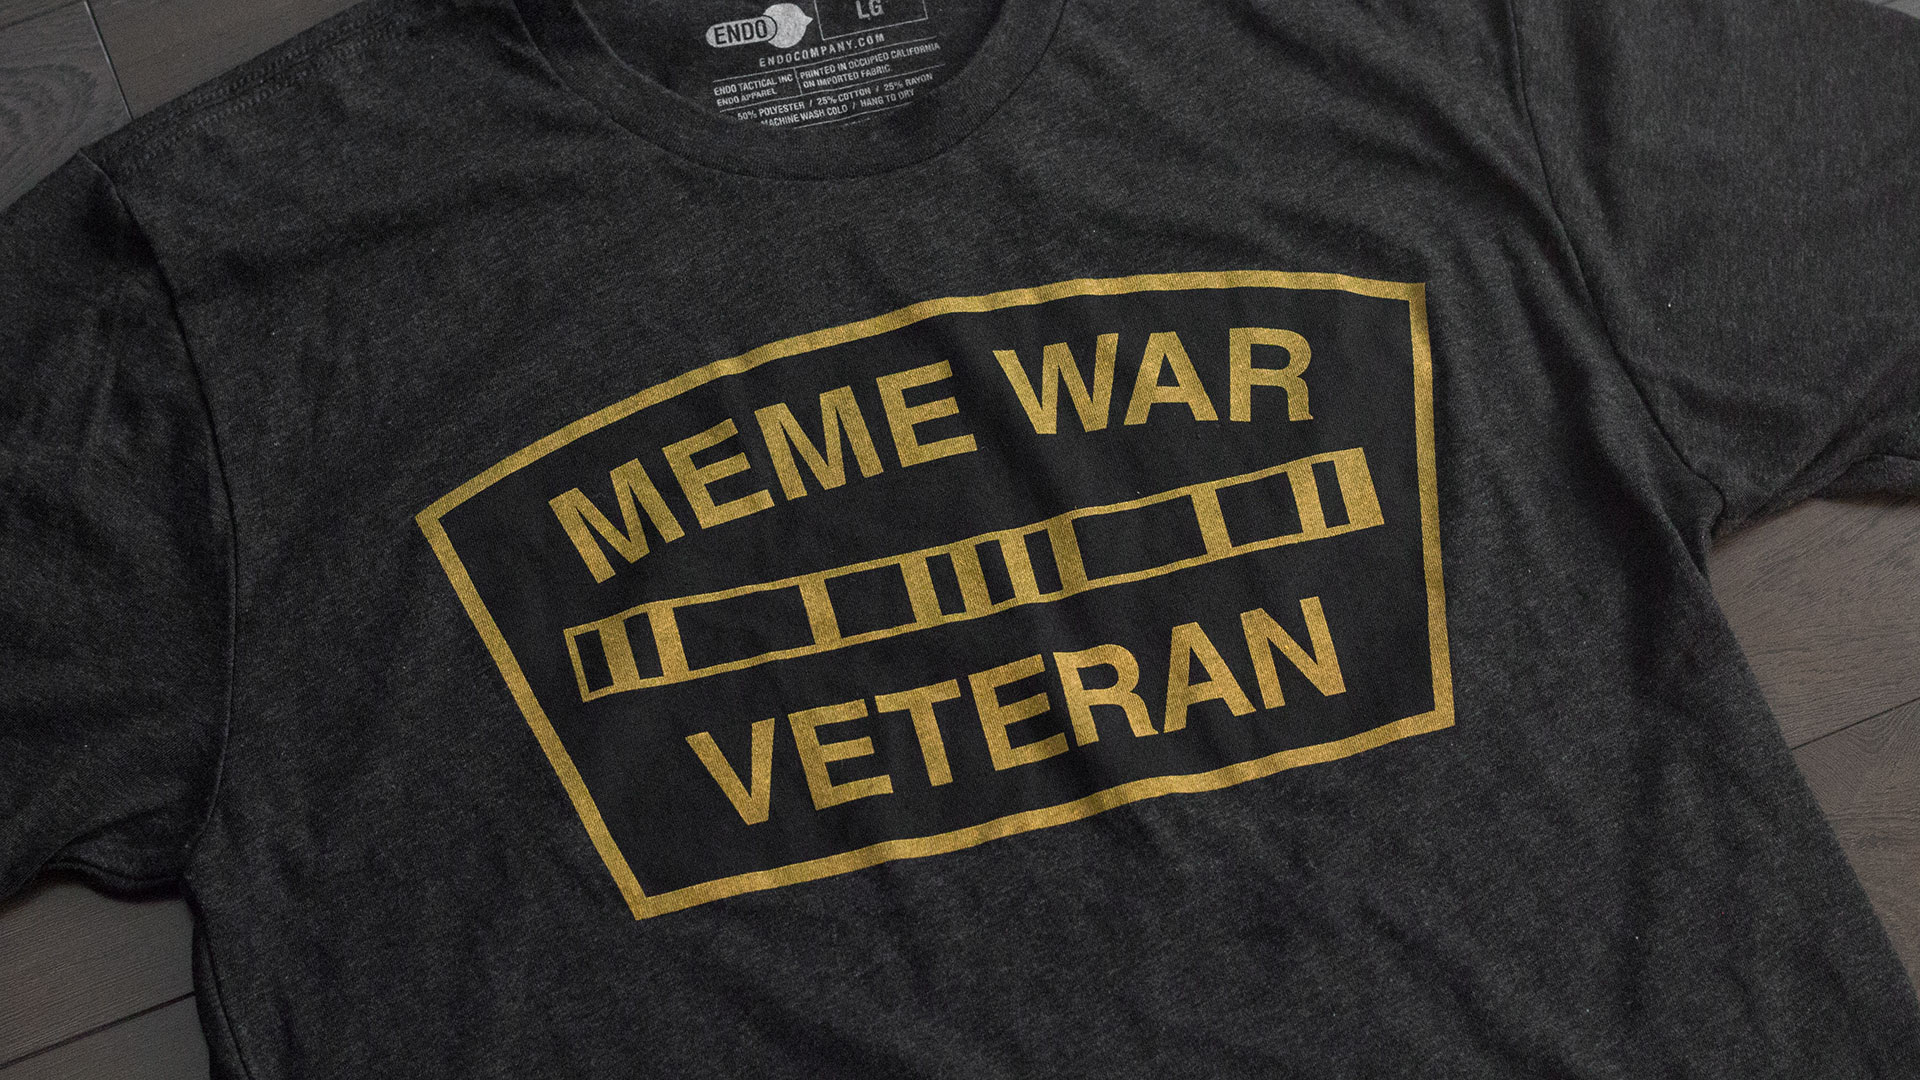 Meme War Veteran Logo T-Shirt Detail 1